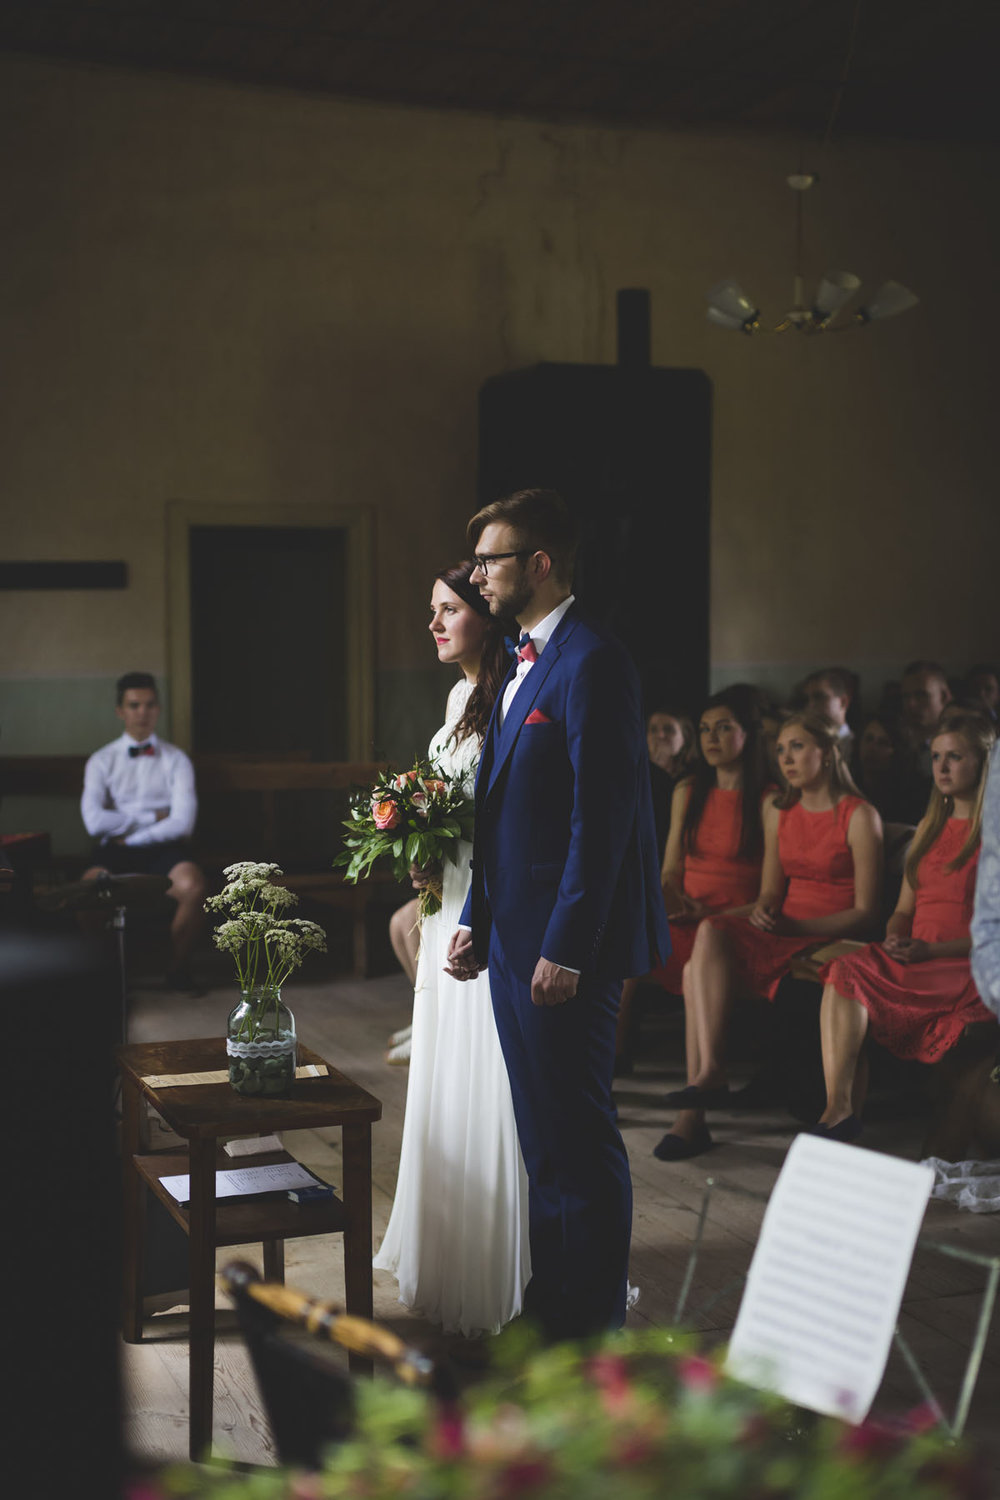 wedding-photos-072-hipster-wedding.jpg